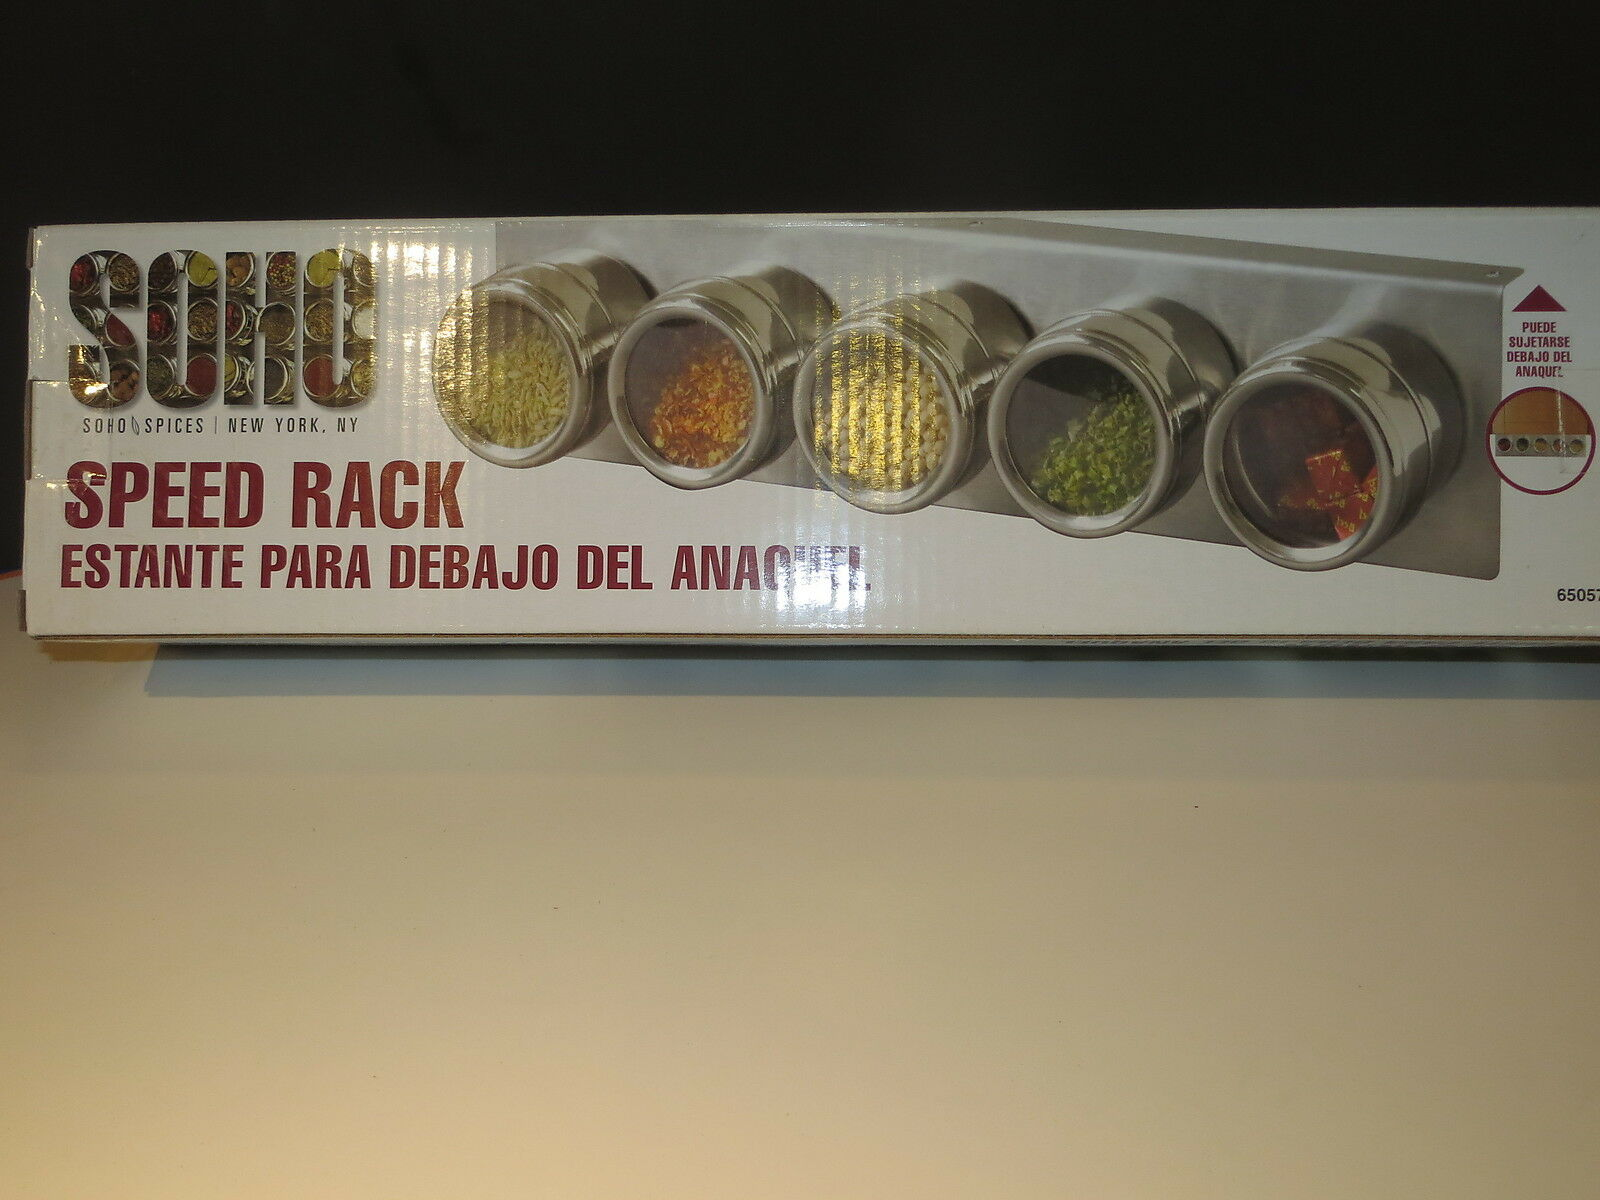 Chef S Speed Rack By Soho 18 8 Ss Kitchen Spice Rack